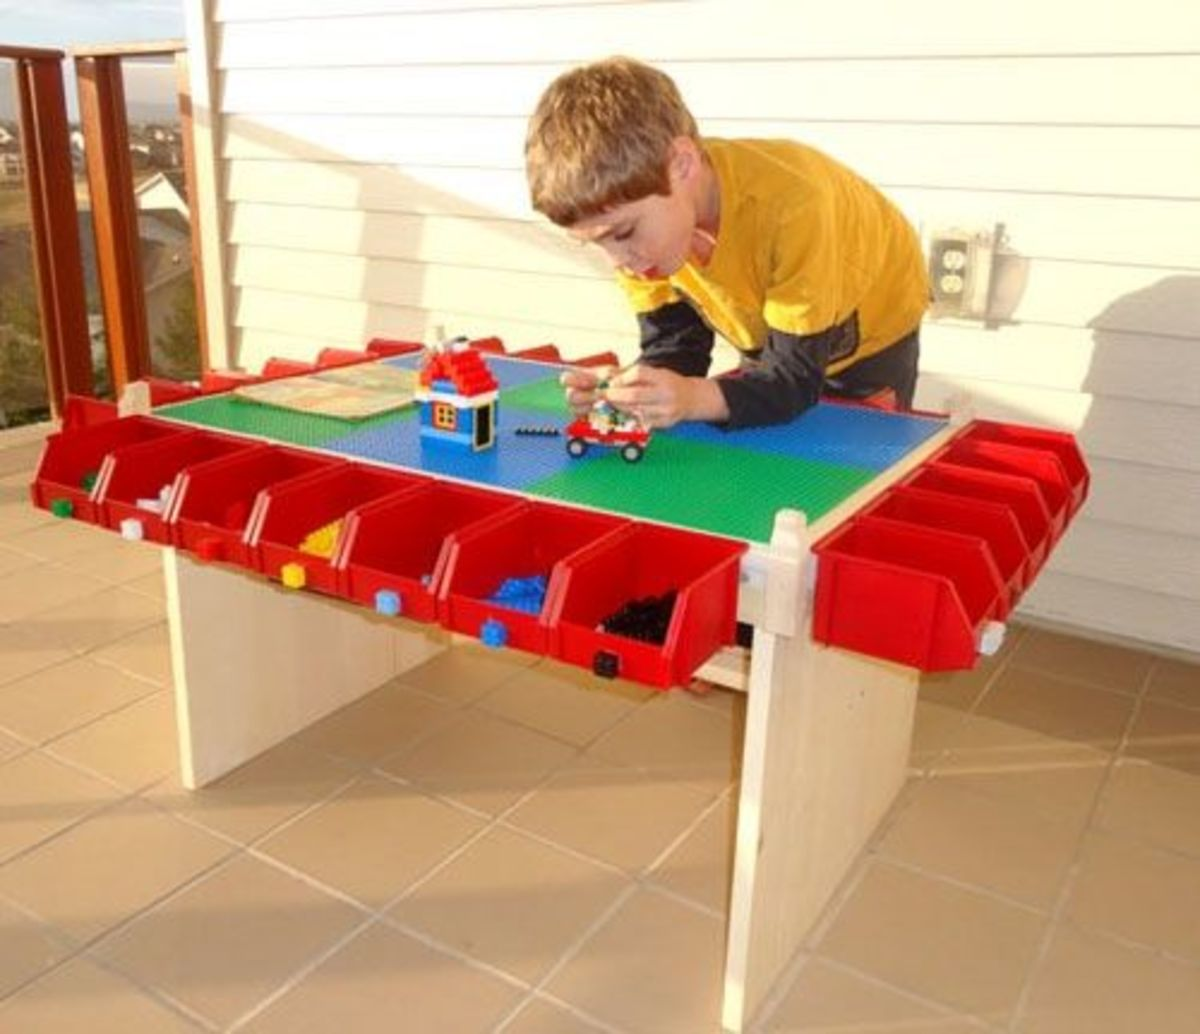 This DIY Lego Table was hand crafted and the bins added to all the sides to allow for EASY Lego Storage as well as sorting all the pieces.